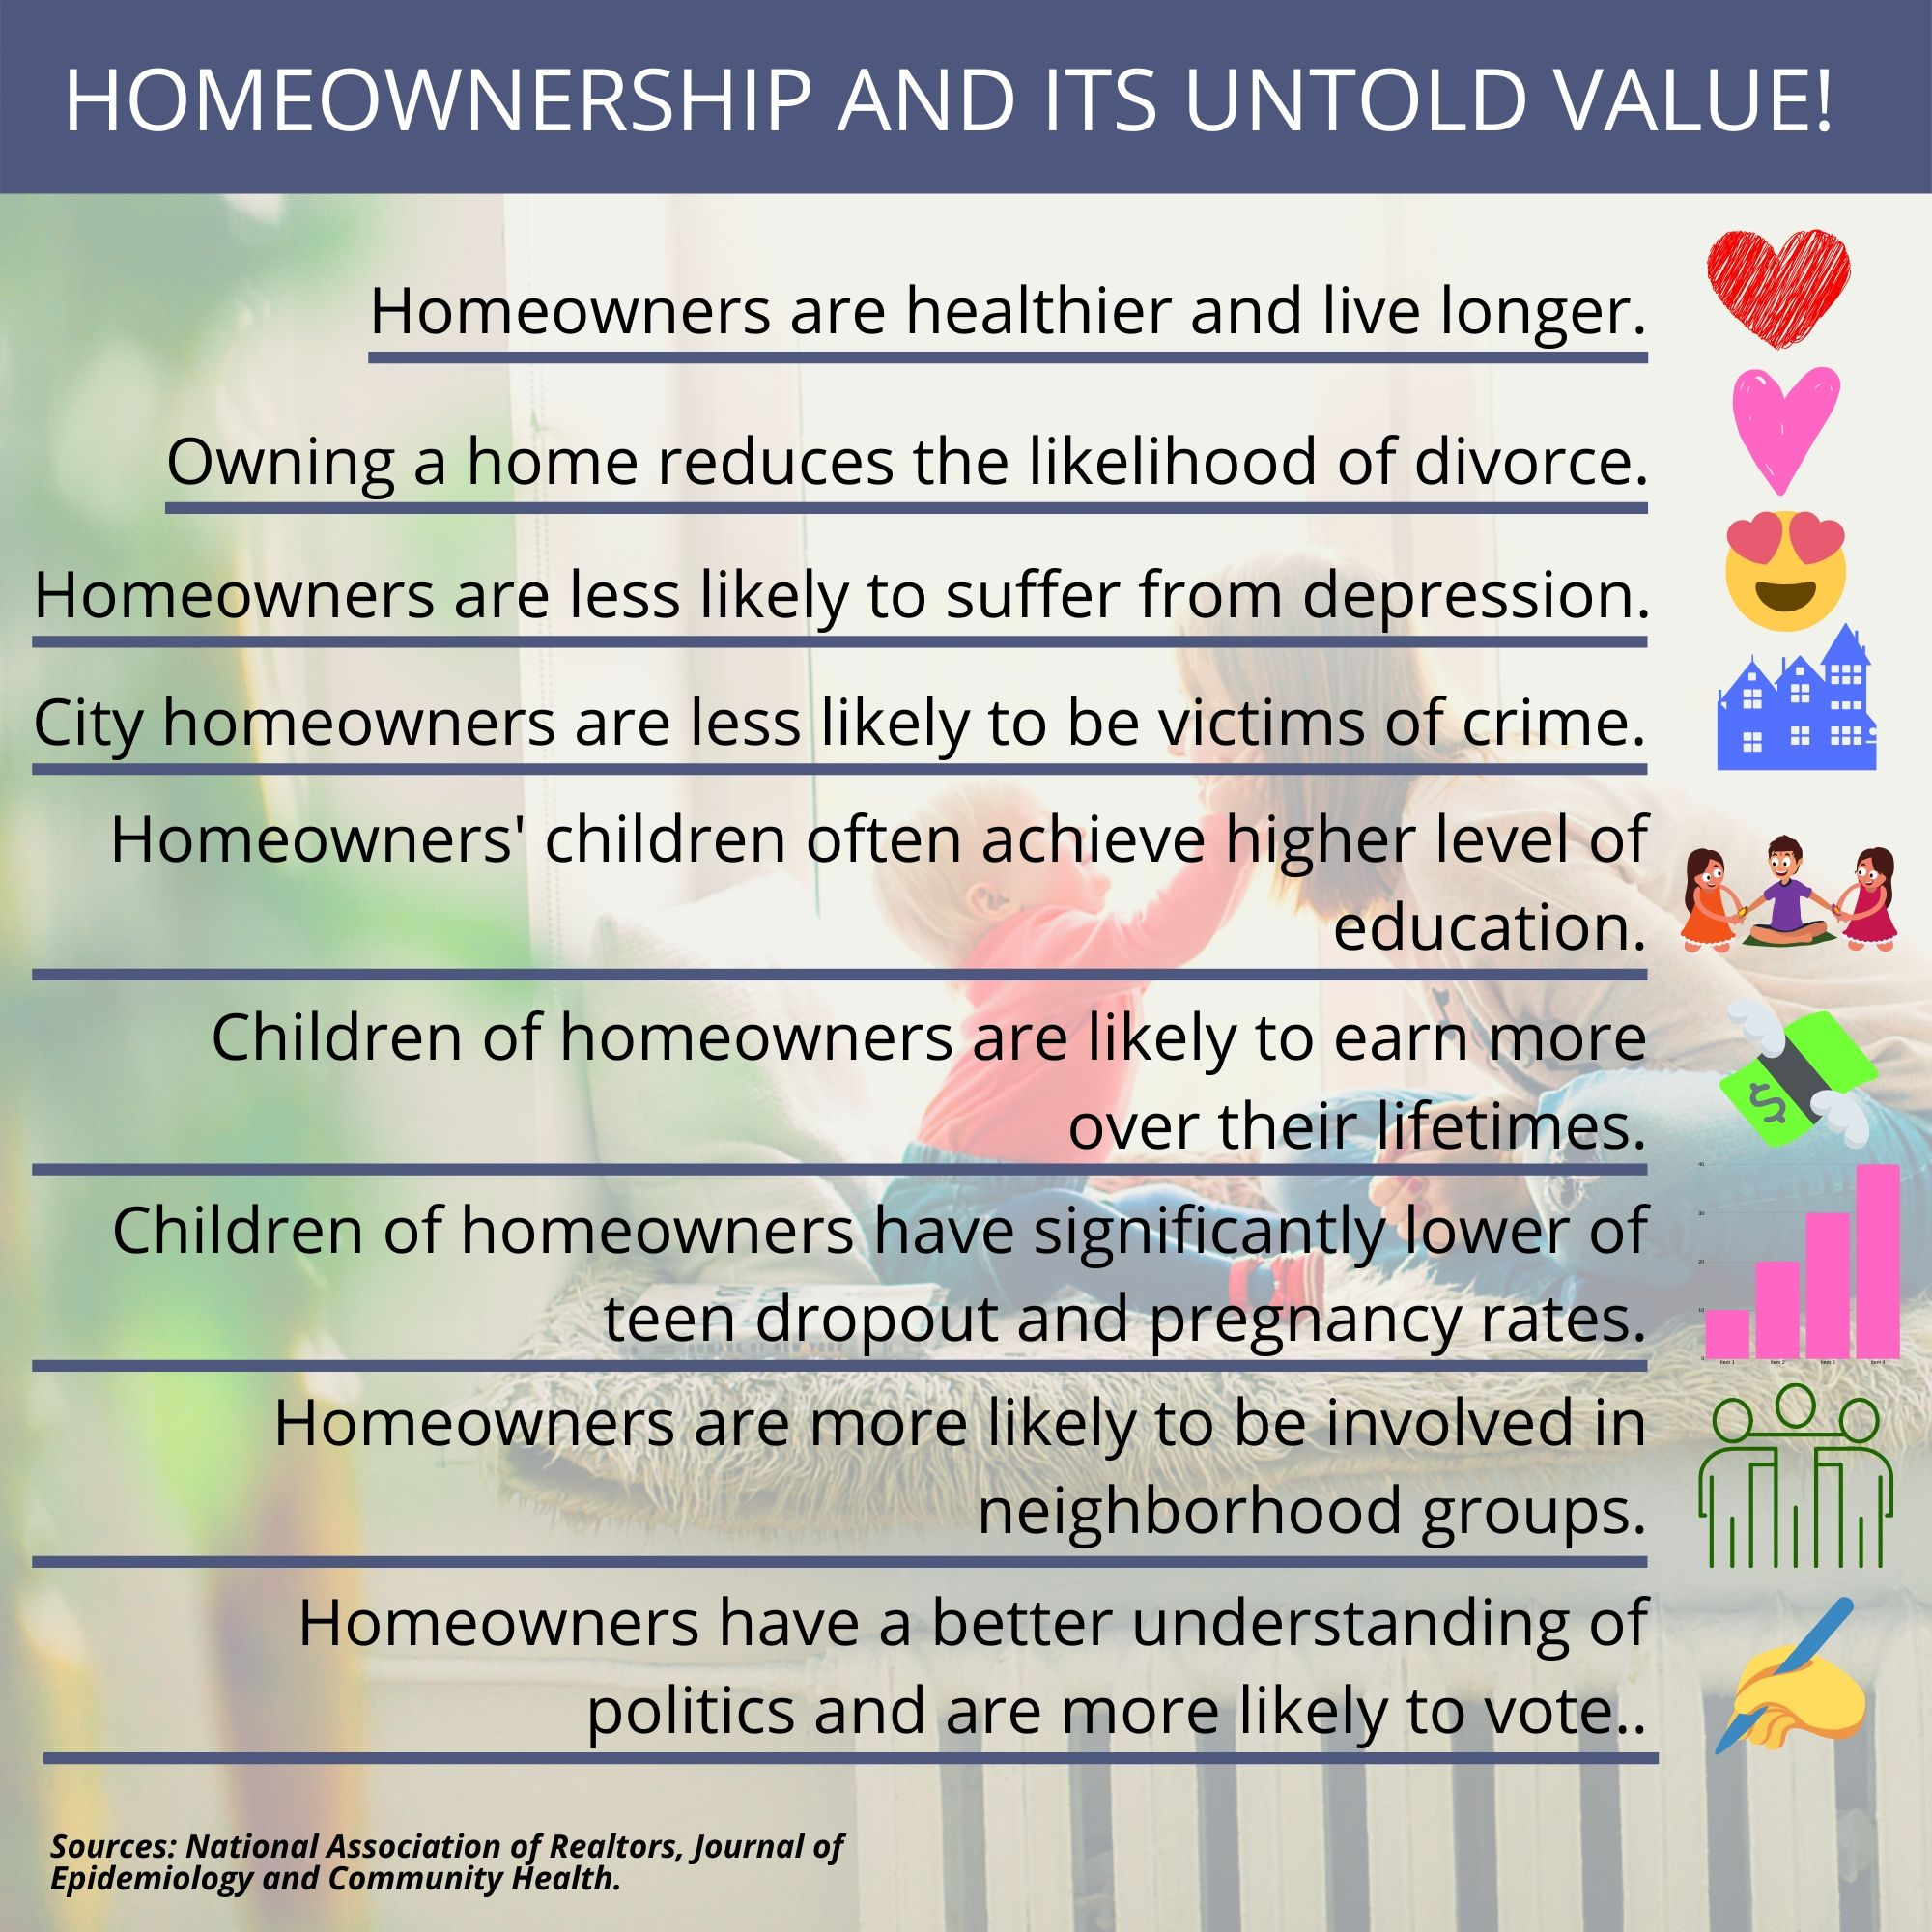 HOME OWNERSHIP AND ITS UNTOLD VALUE! (3).jpg